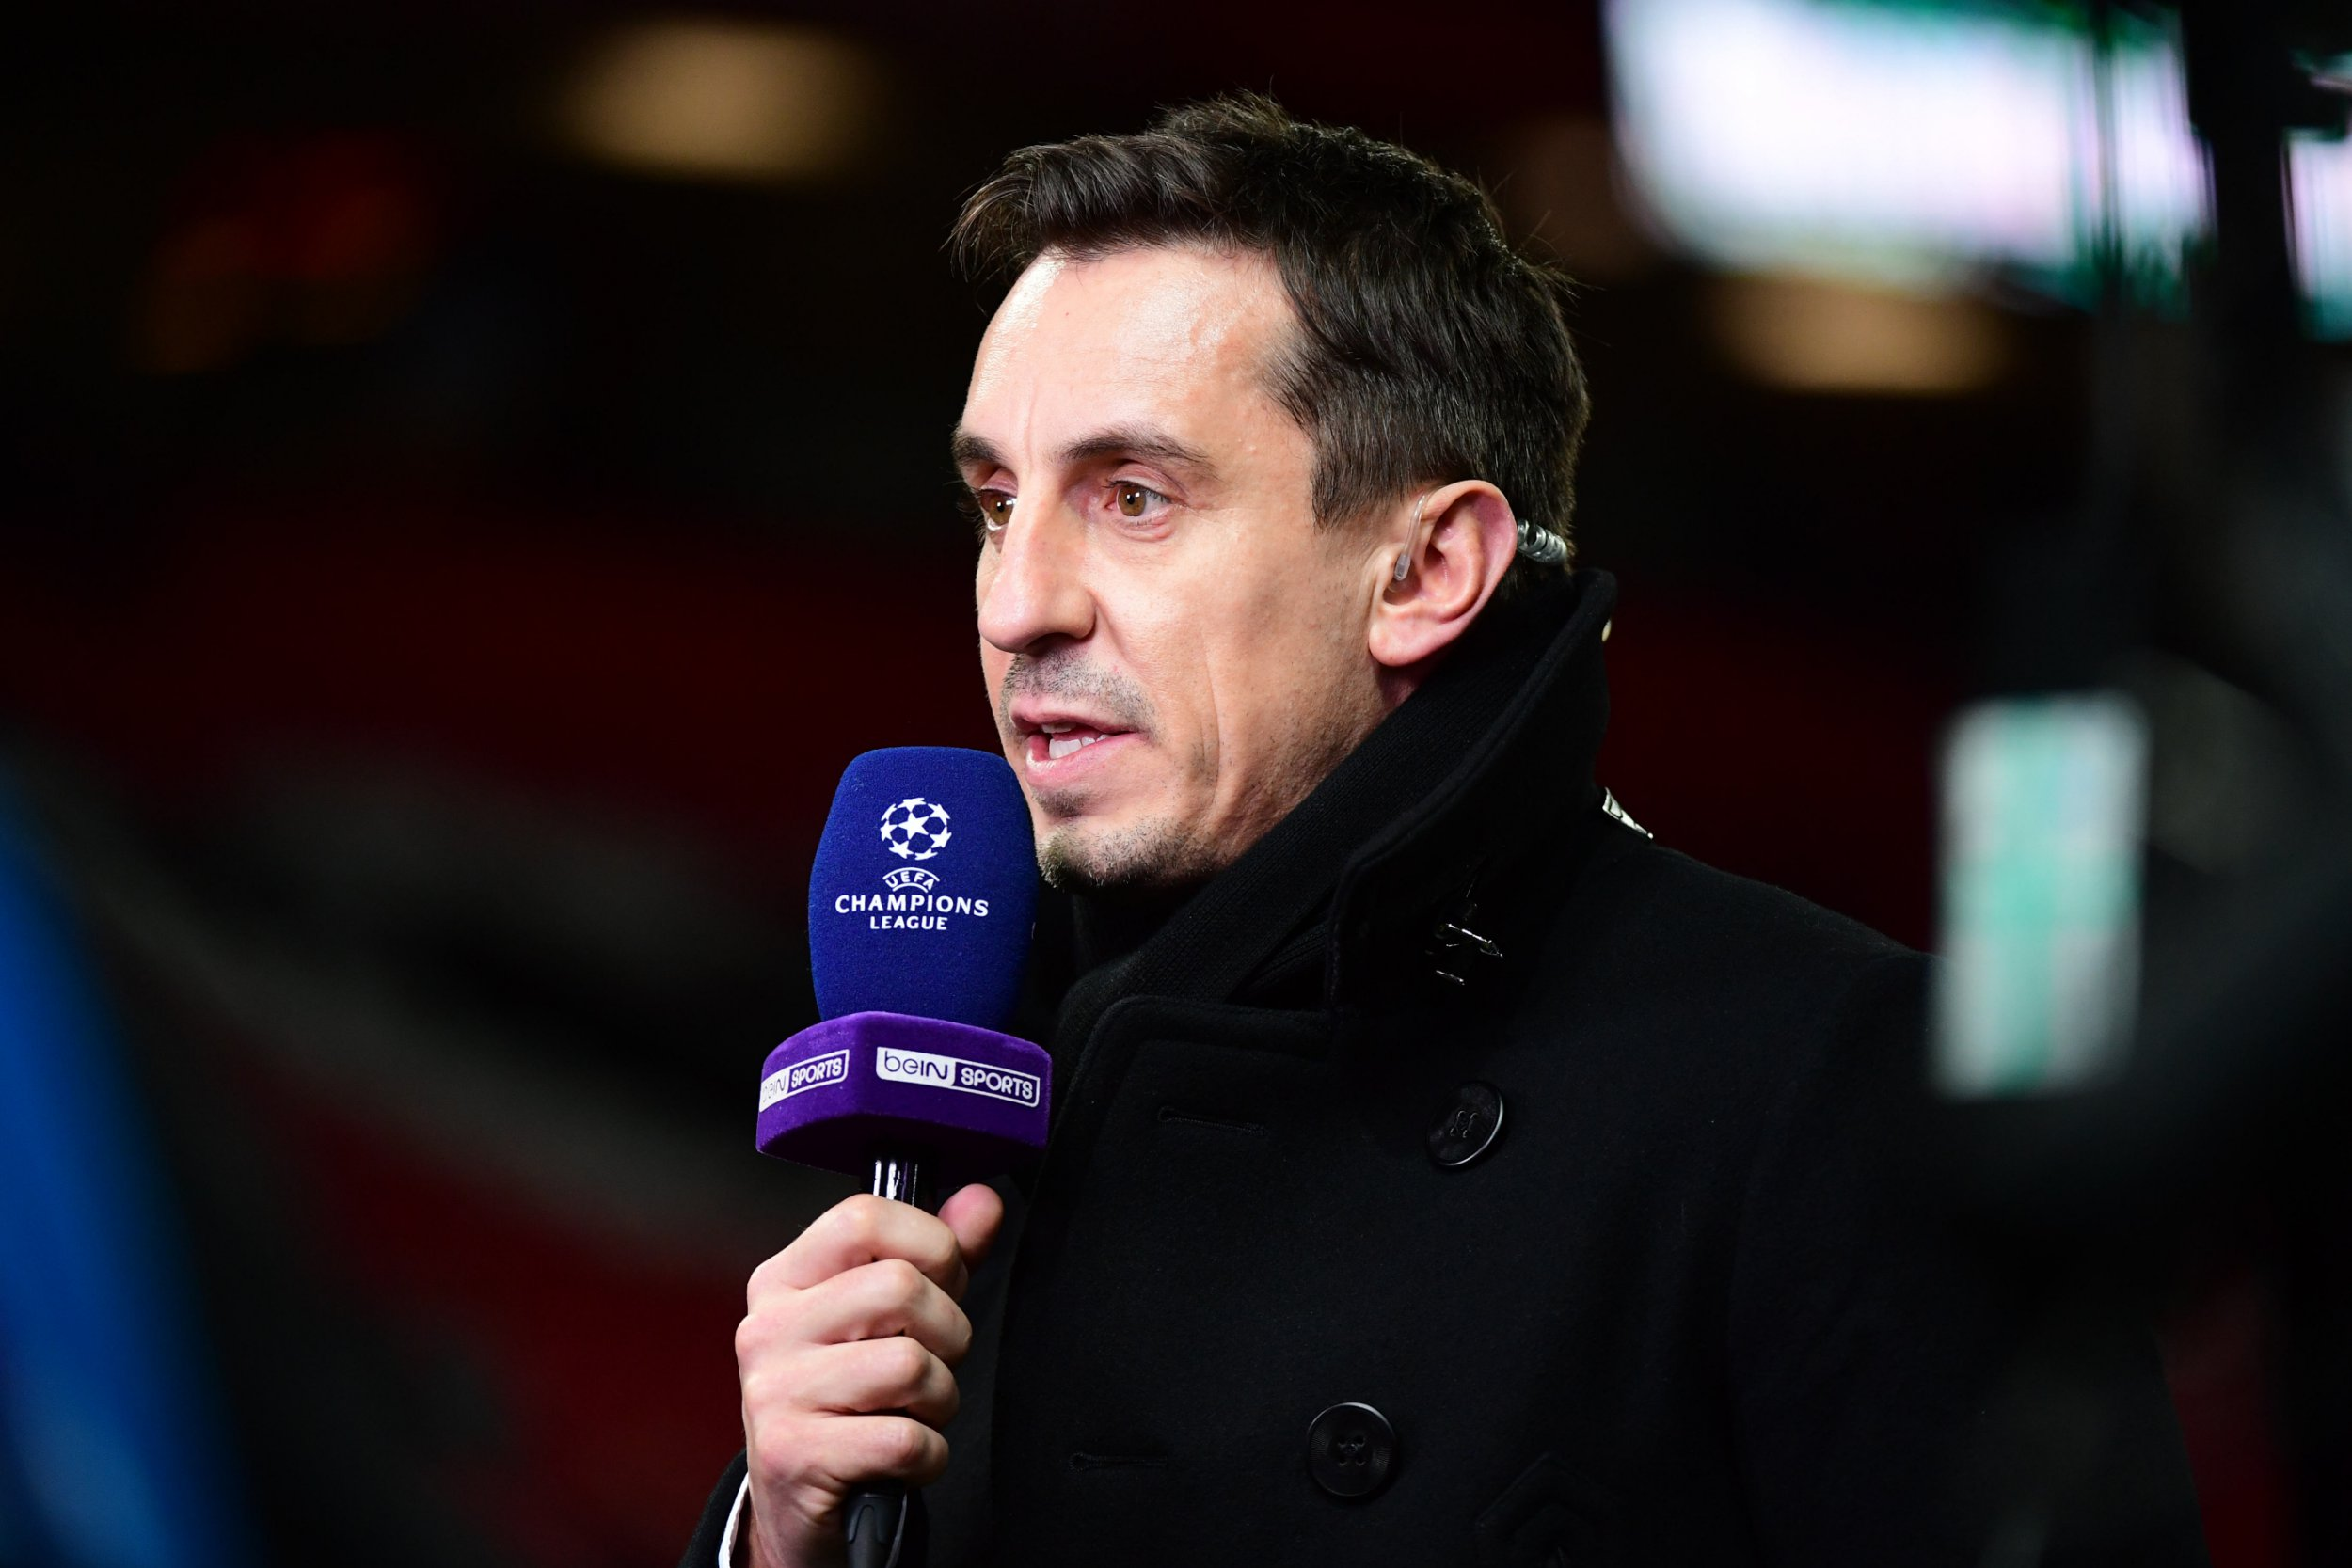 Gary Neville speaking as a pundit during the Champions League Round of 16